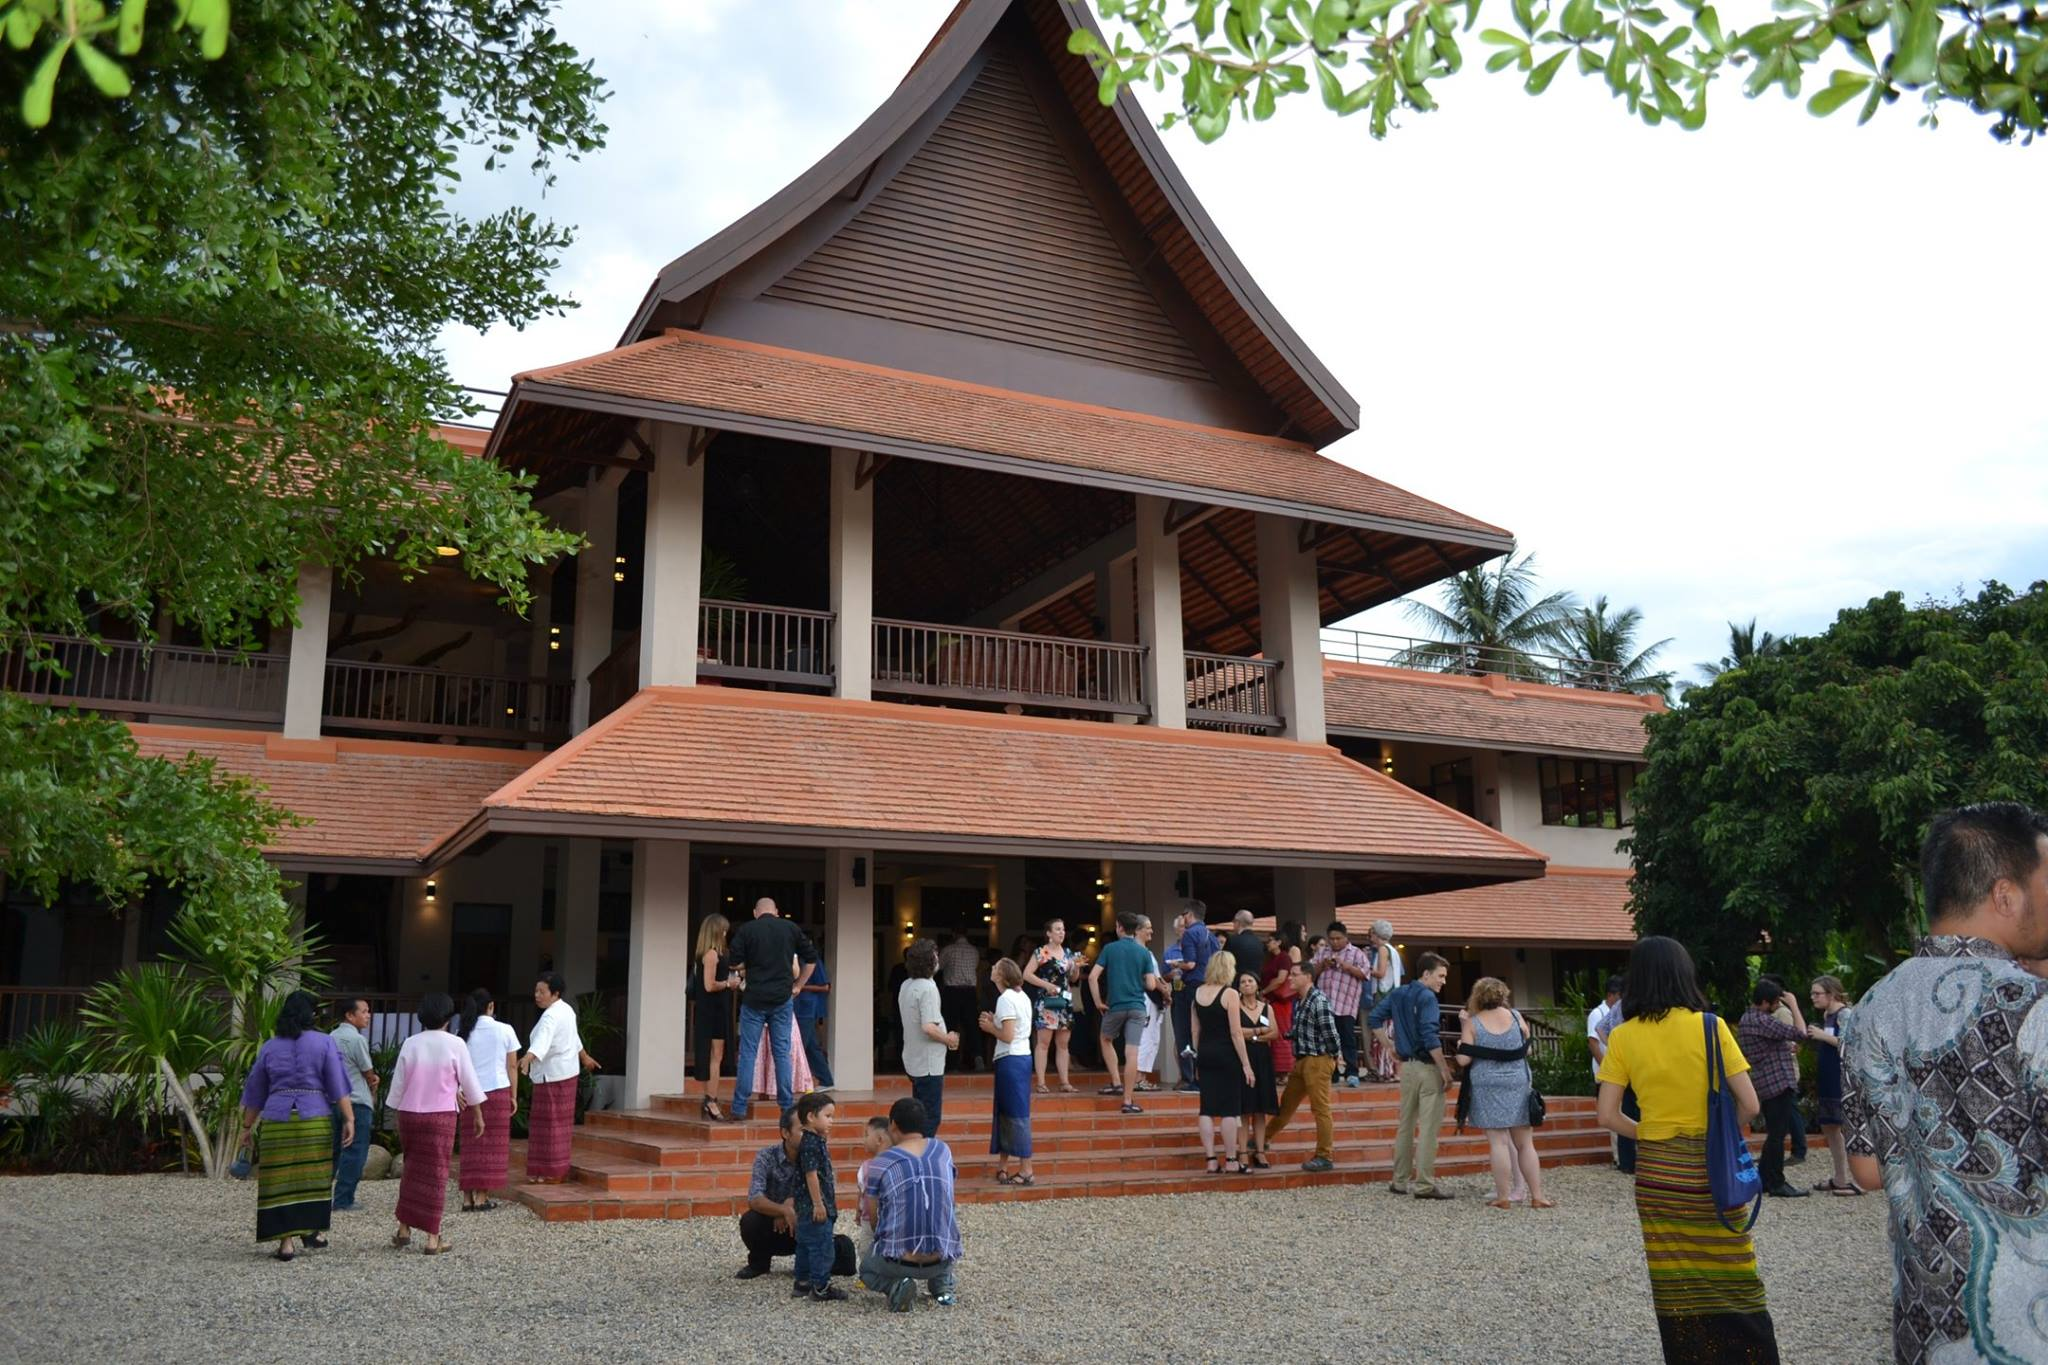 Friends and supporters explore the Mitharsuu Center, the new home for the earth rights movement in Chiang Mai.